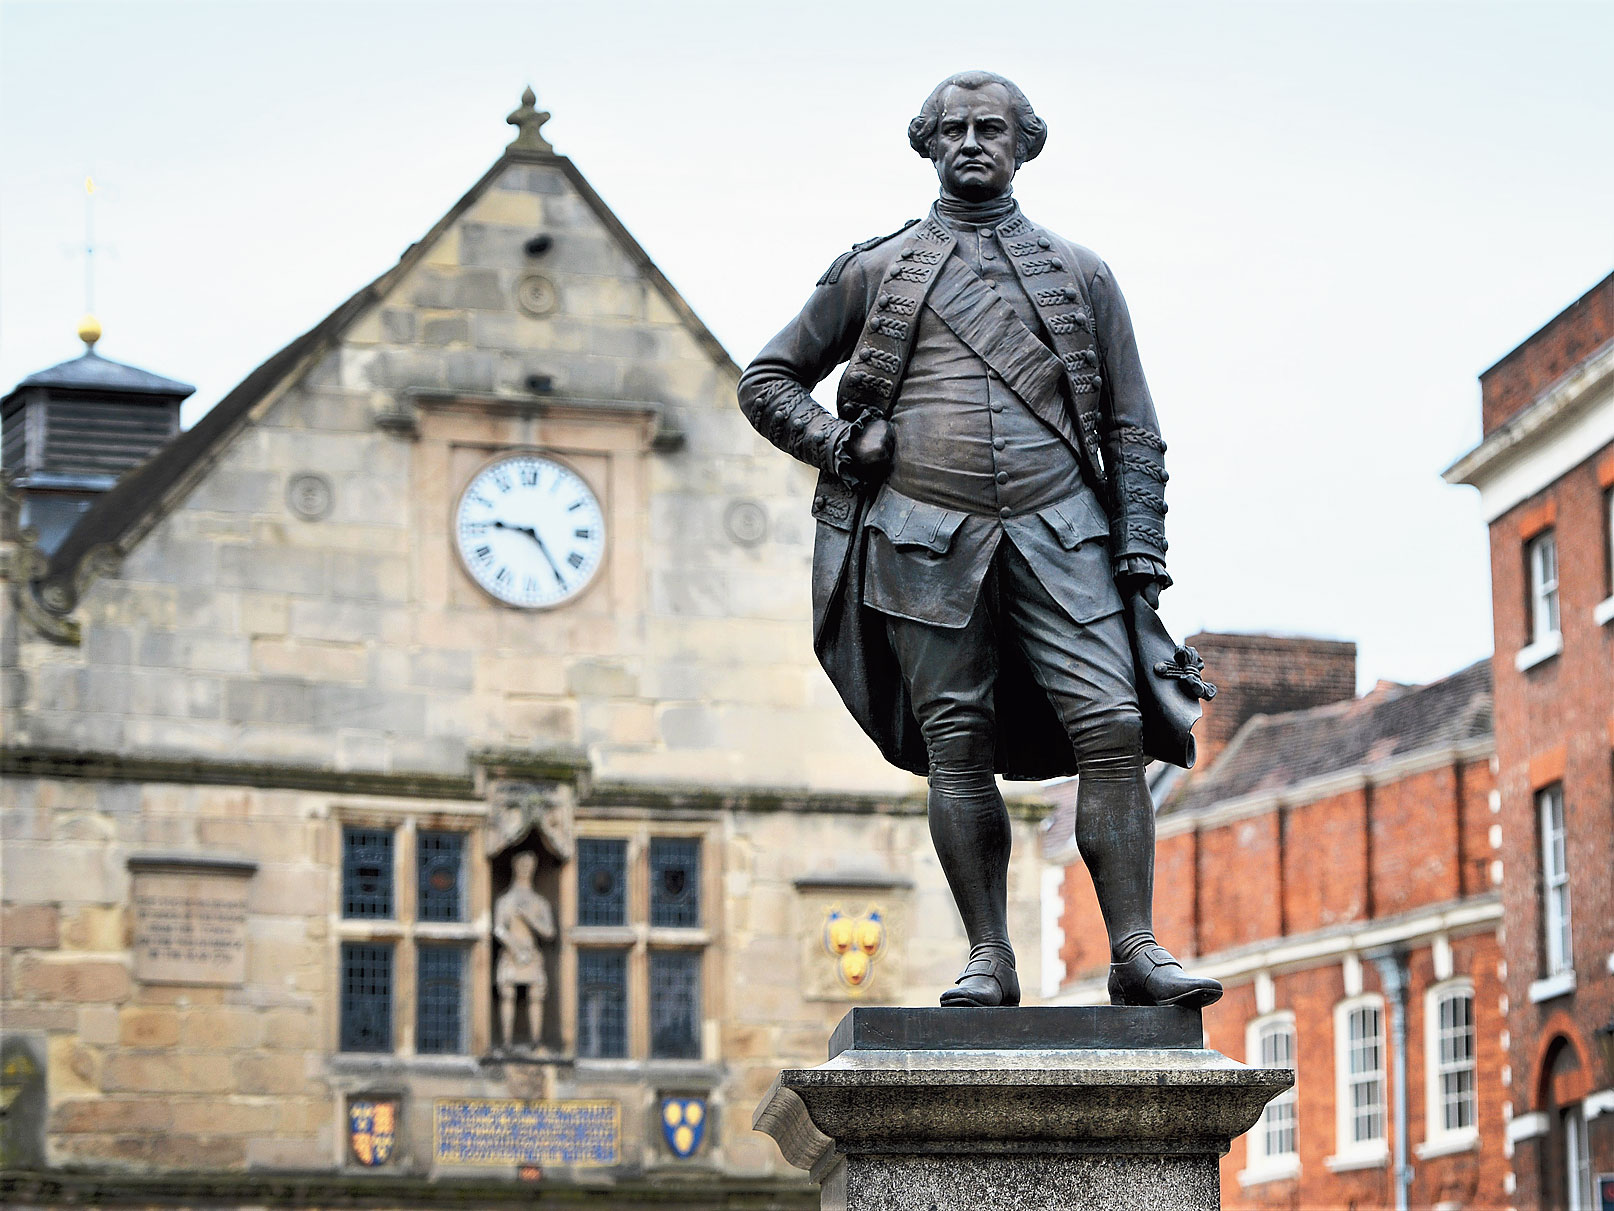 The Clive of India statue in Shrewsbury